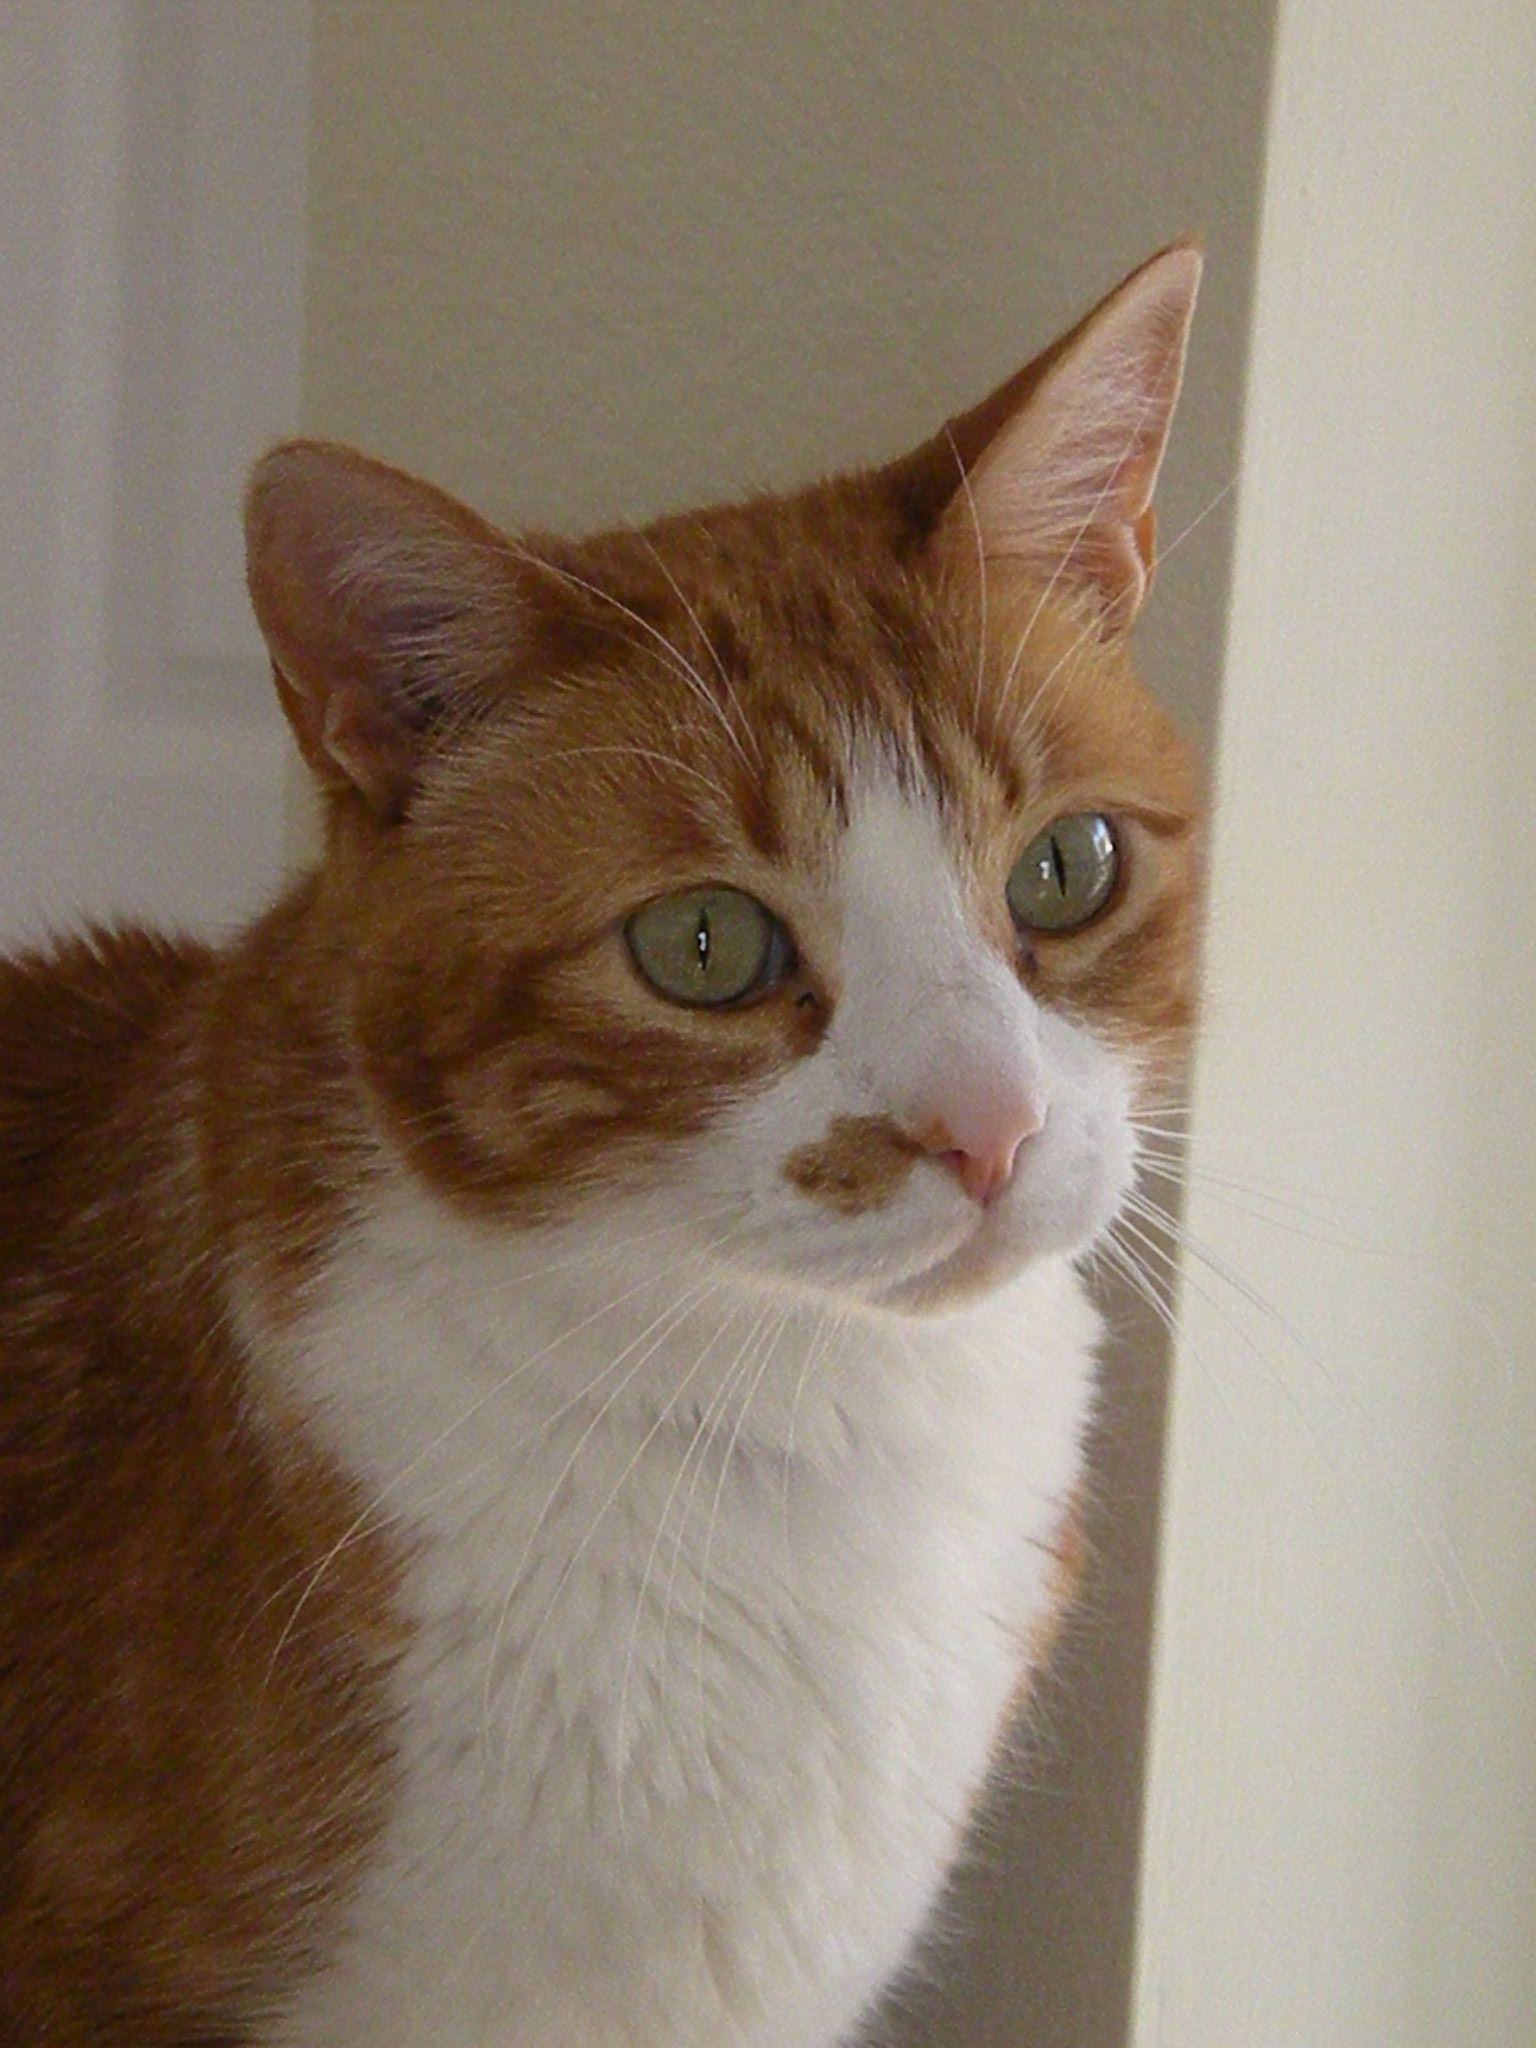 An orange tabby with facial markings and nose spot